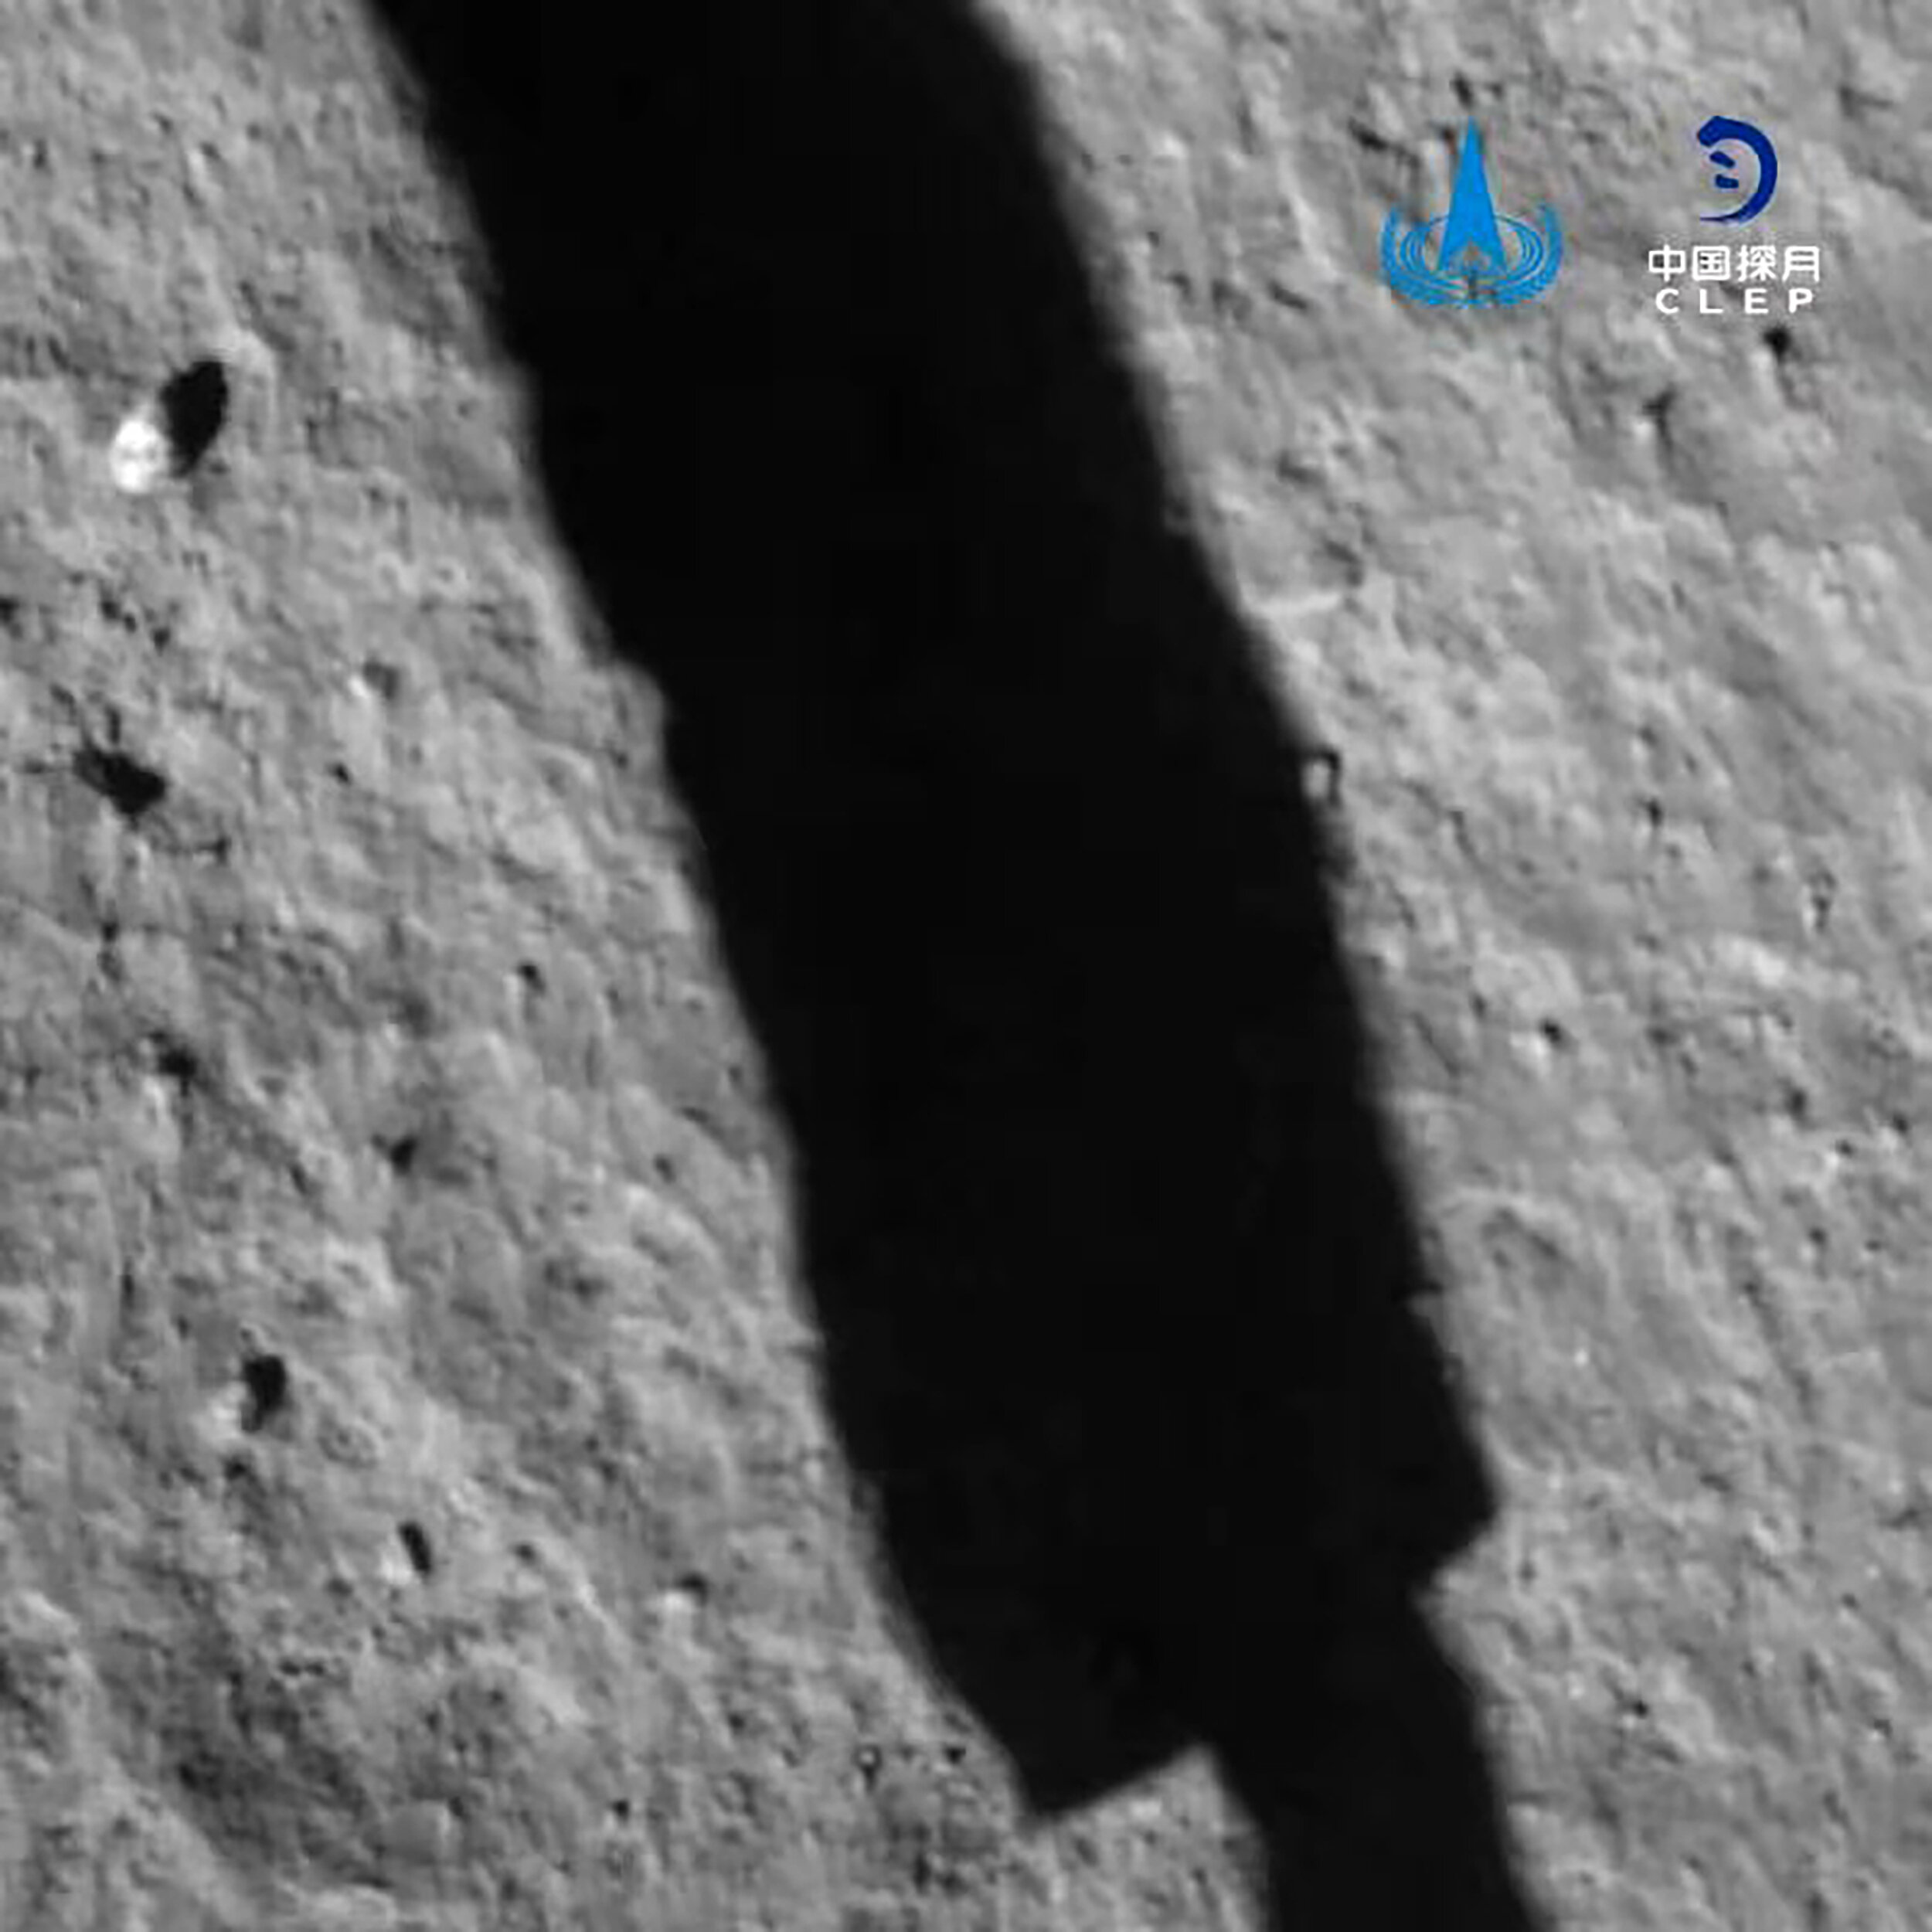 China spacecraft collects moon samples to take back to Earth